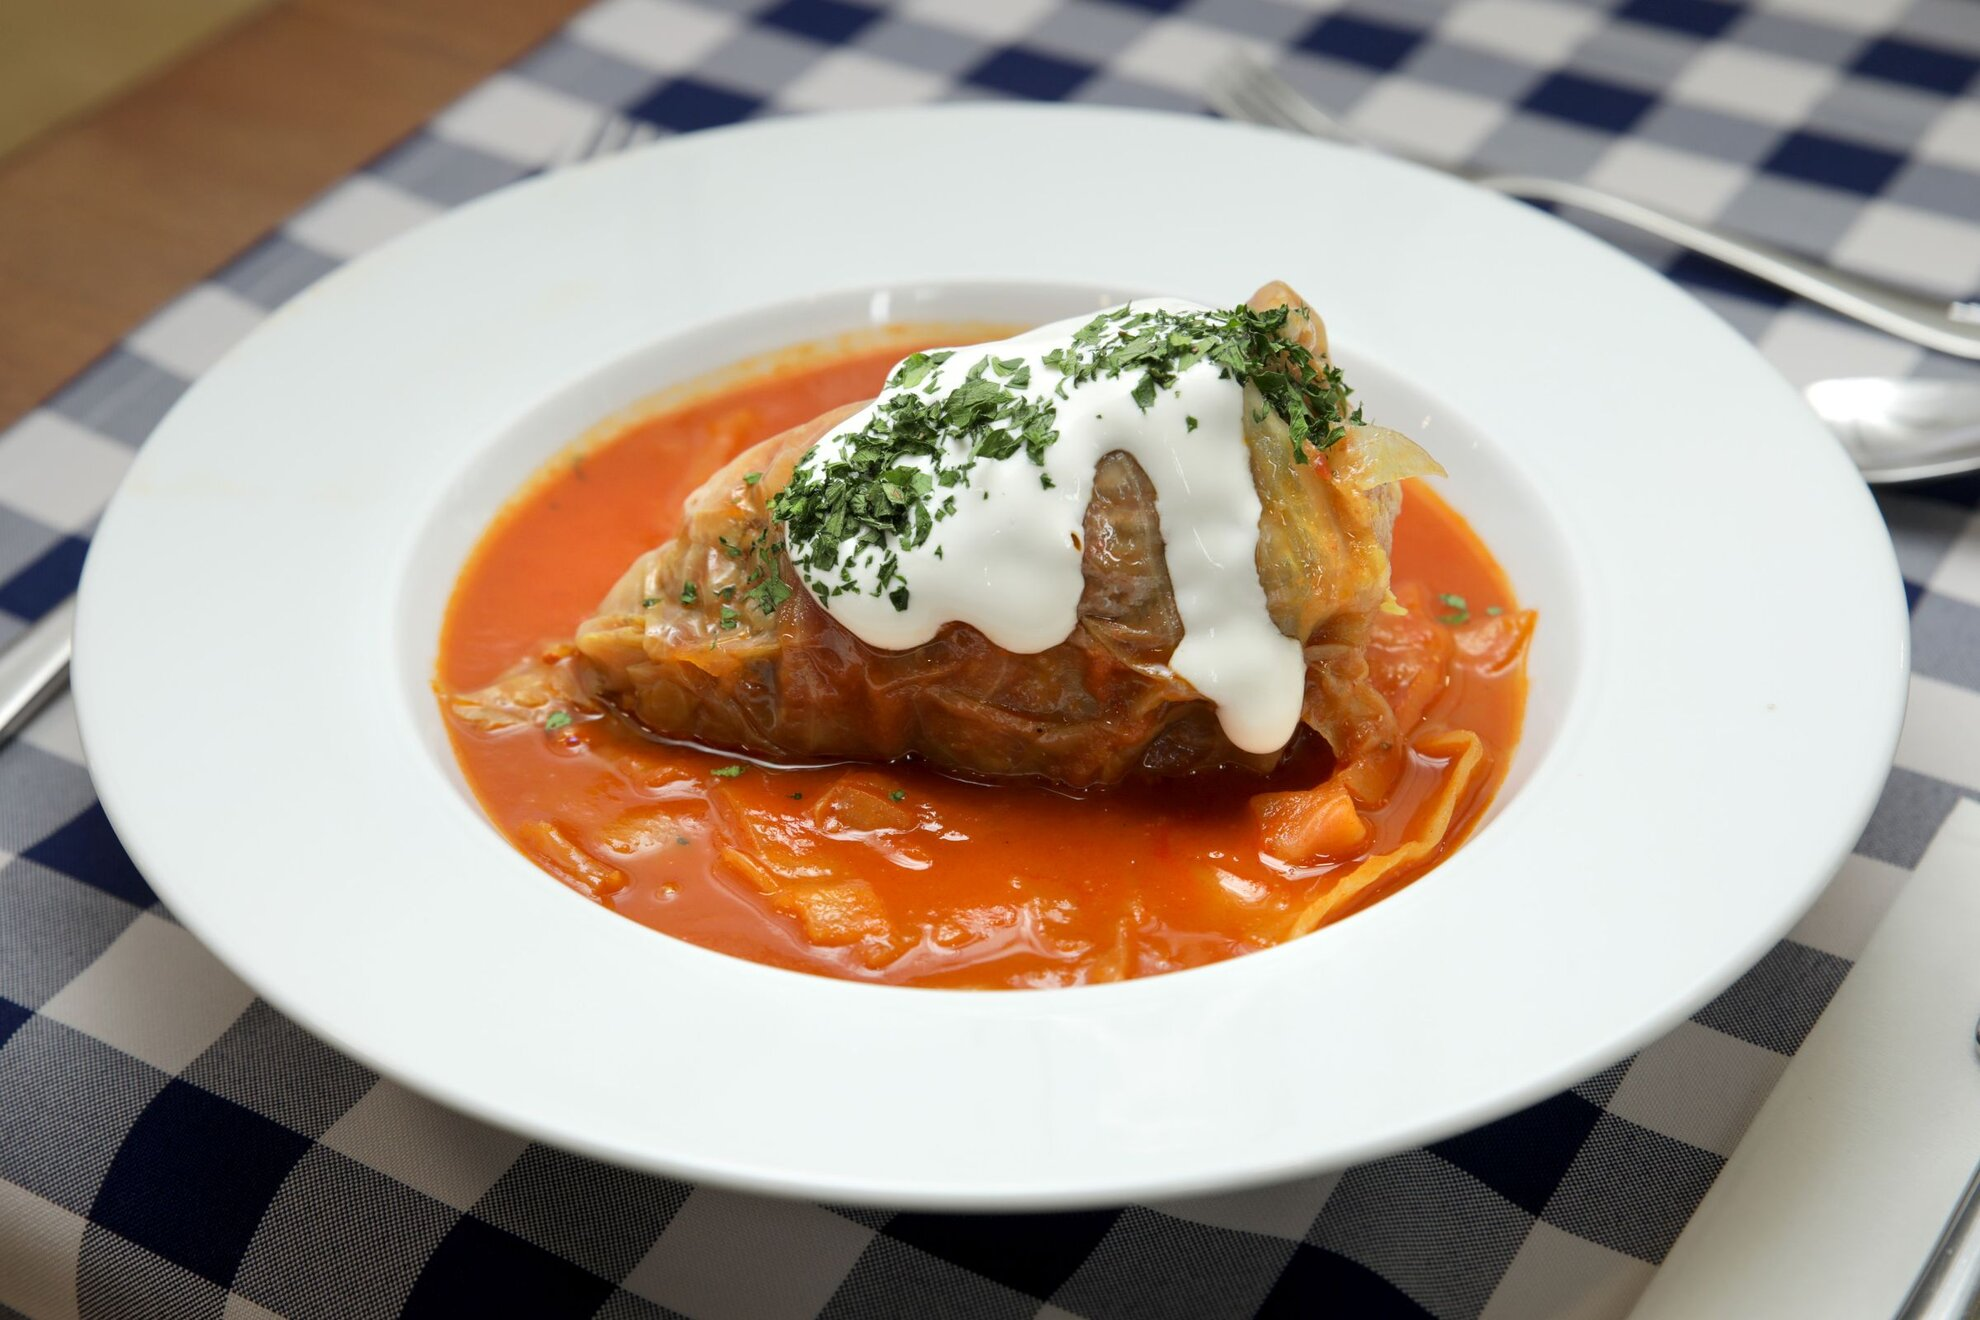 Try your hand at cooking traditional Hungarian stuffed cabbage with this authentic recipe